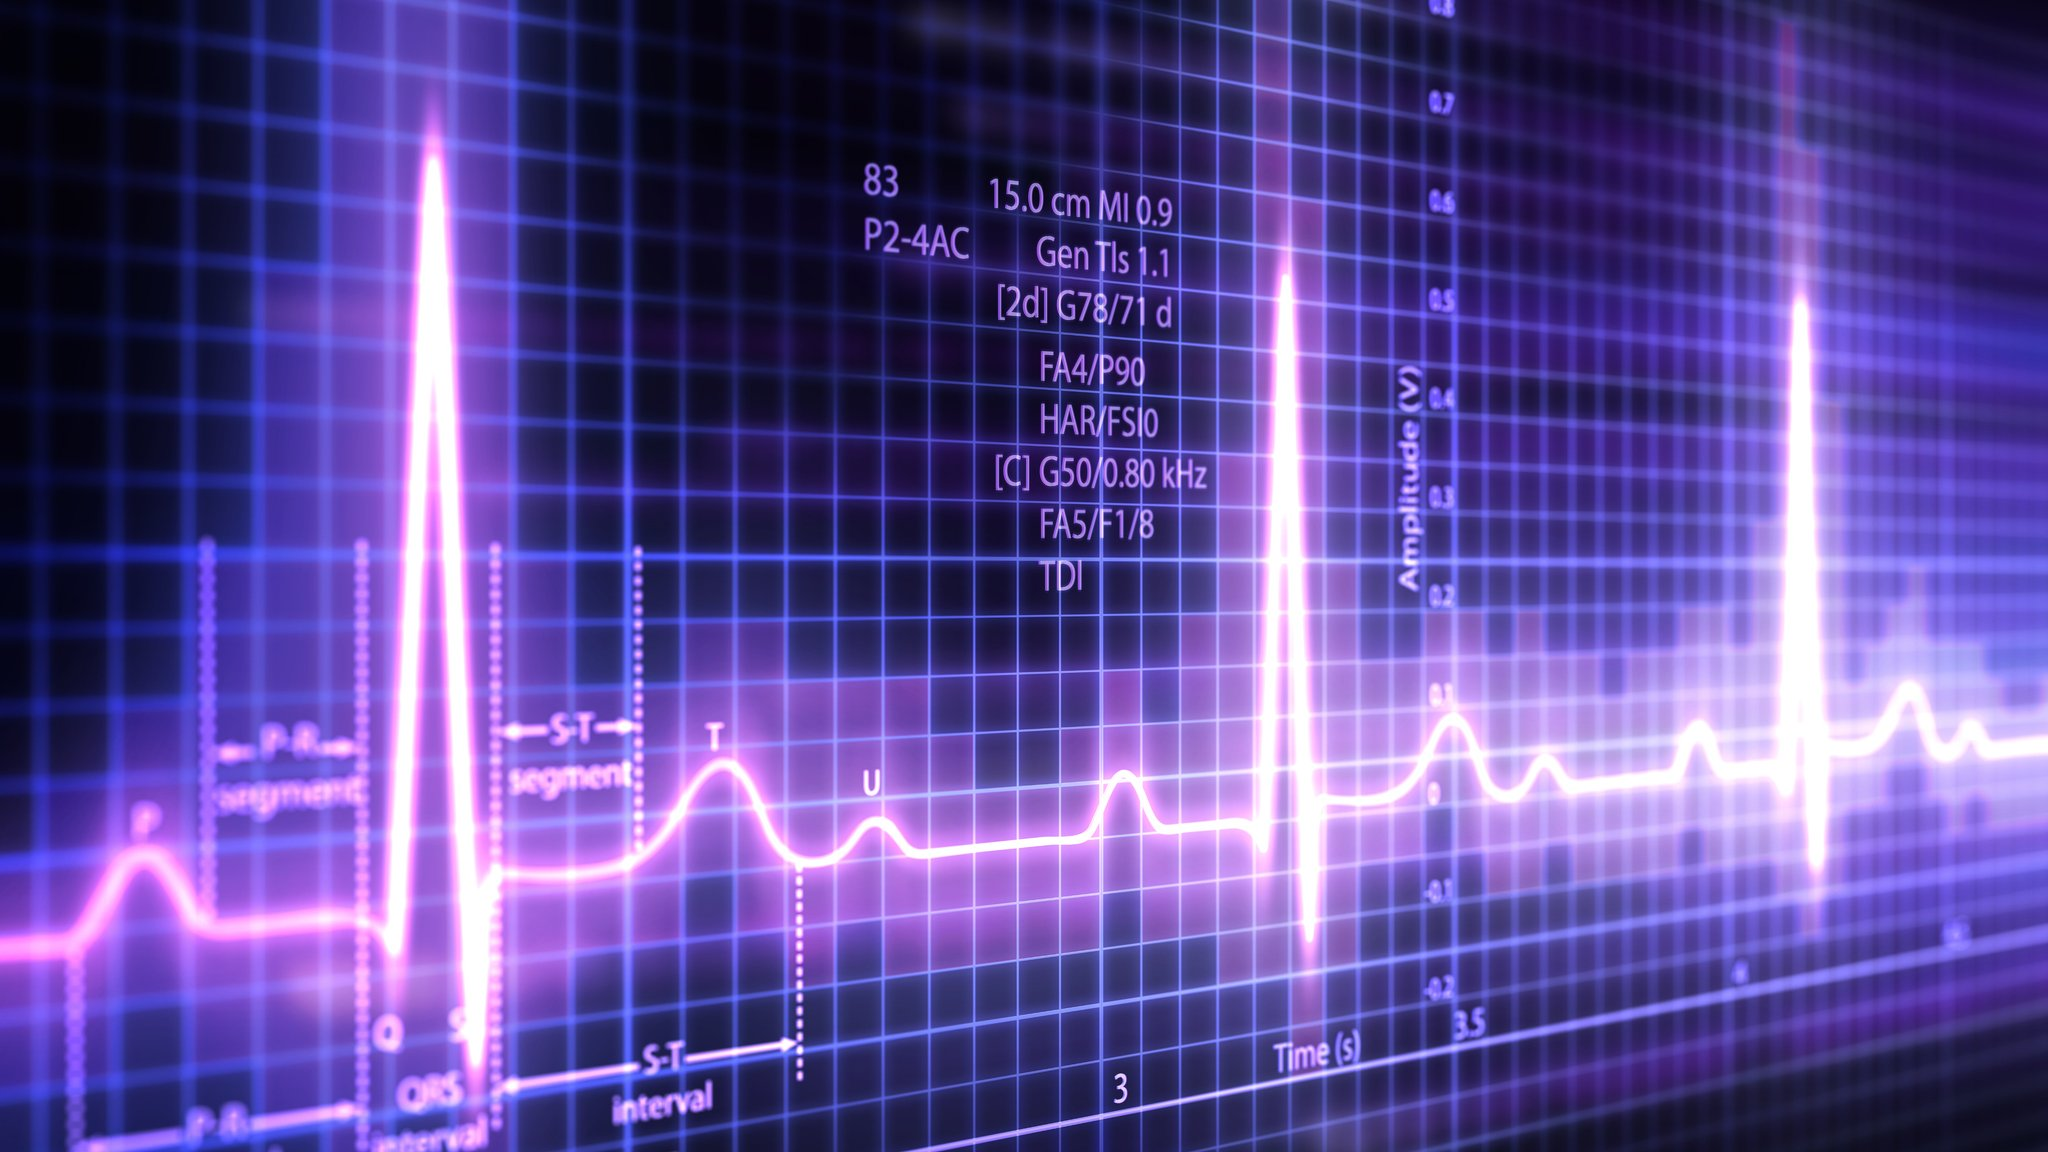 'Thousands' of known bugs found in pacemaker code